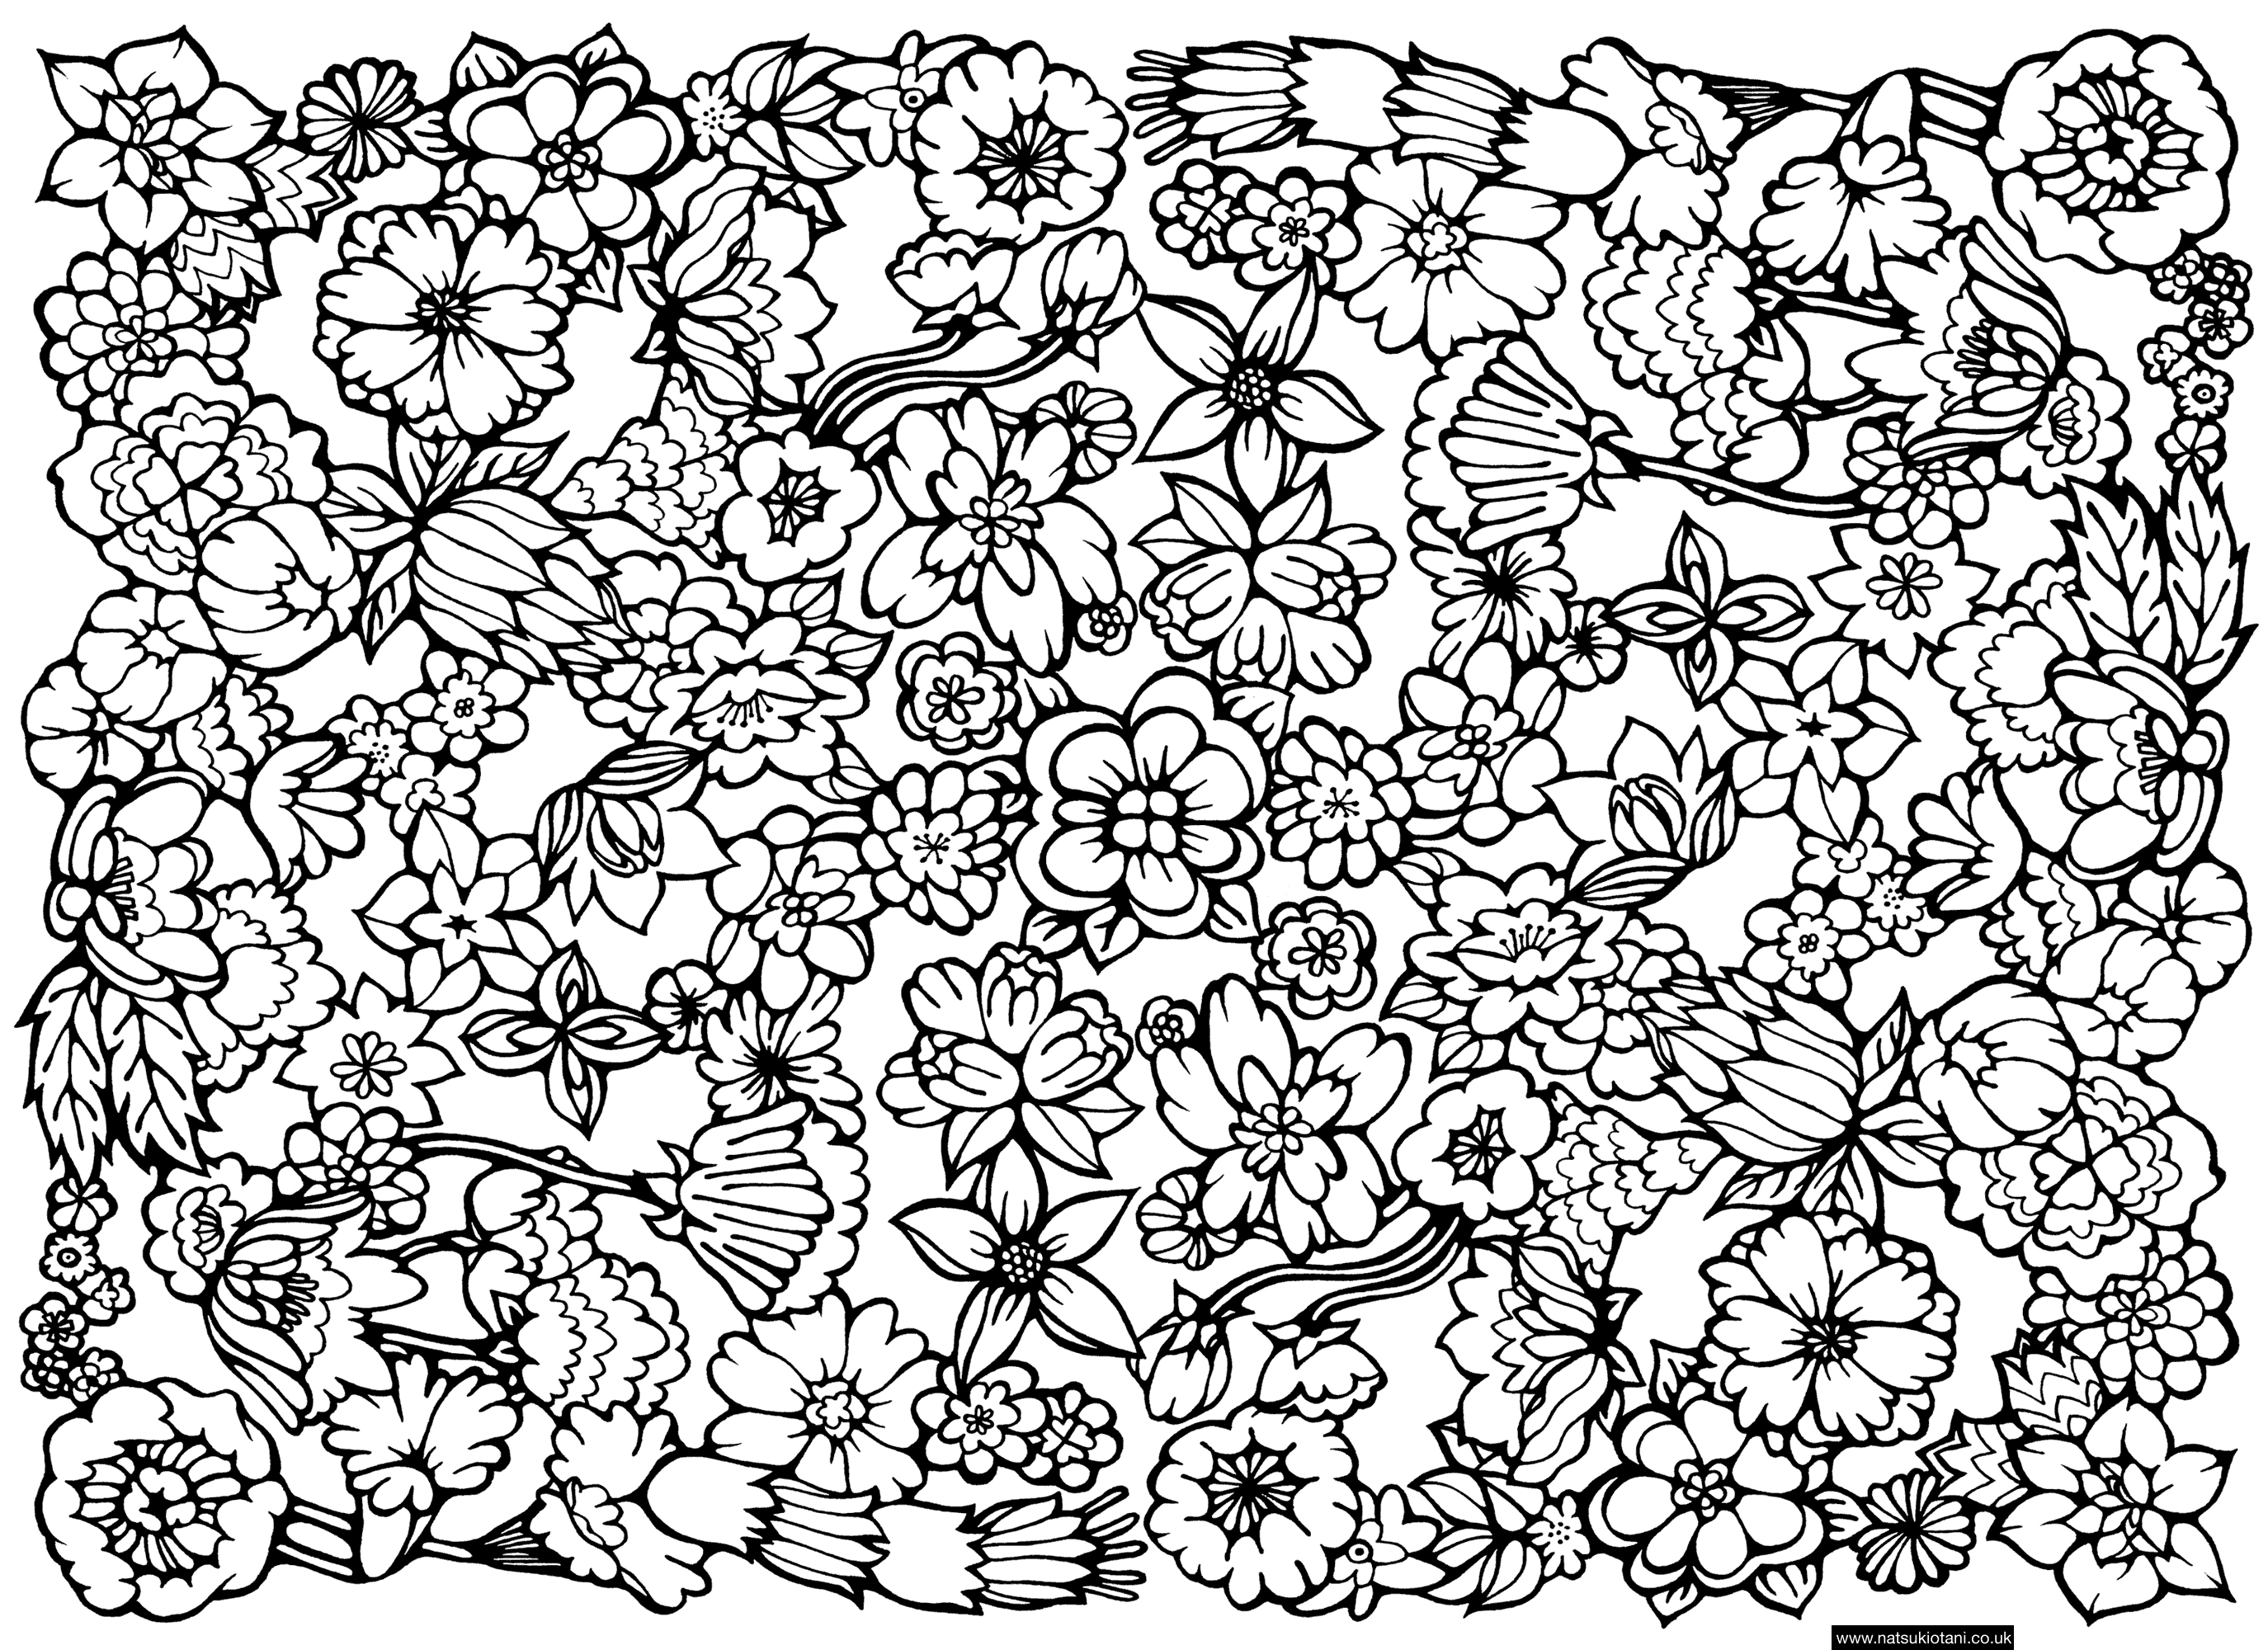 2749x2000 Better Flower Patterns To Color Fundamentals